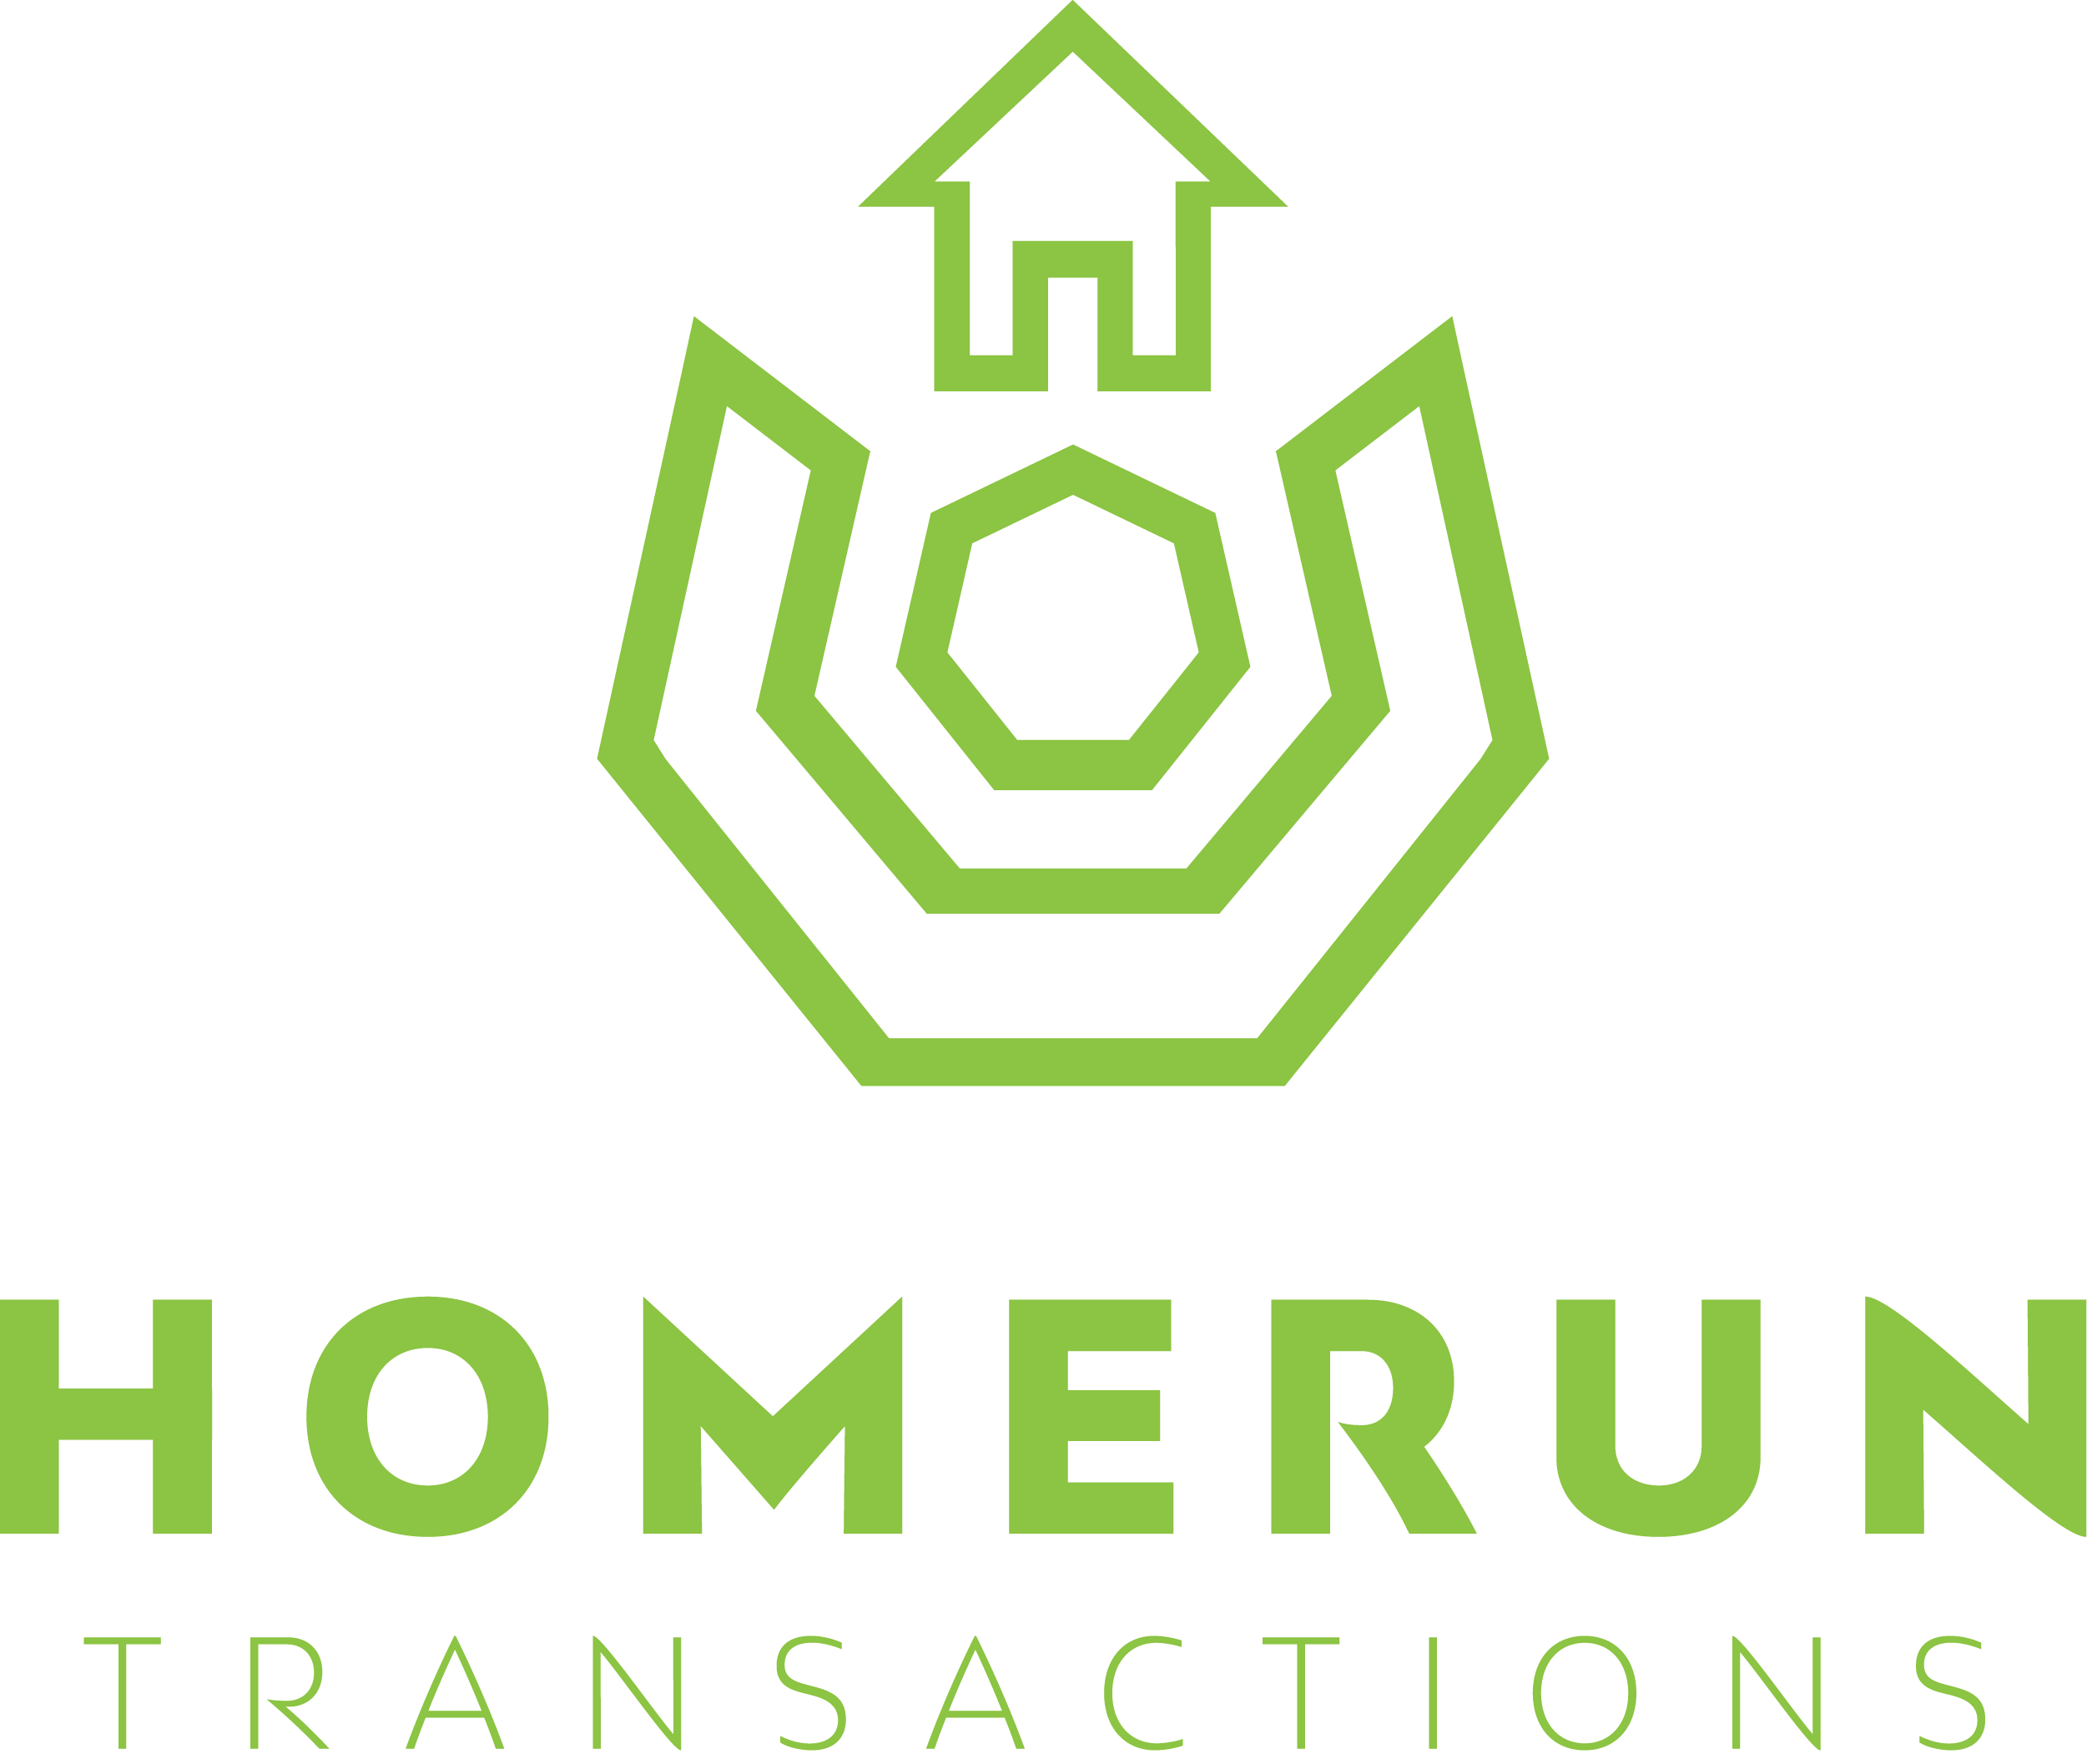 HomeRun Transactions